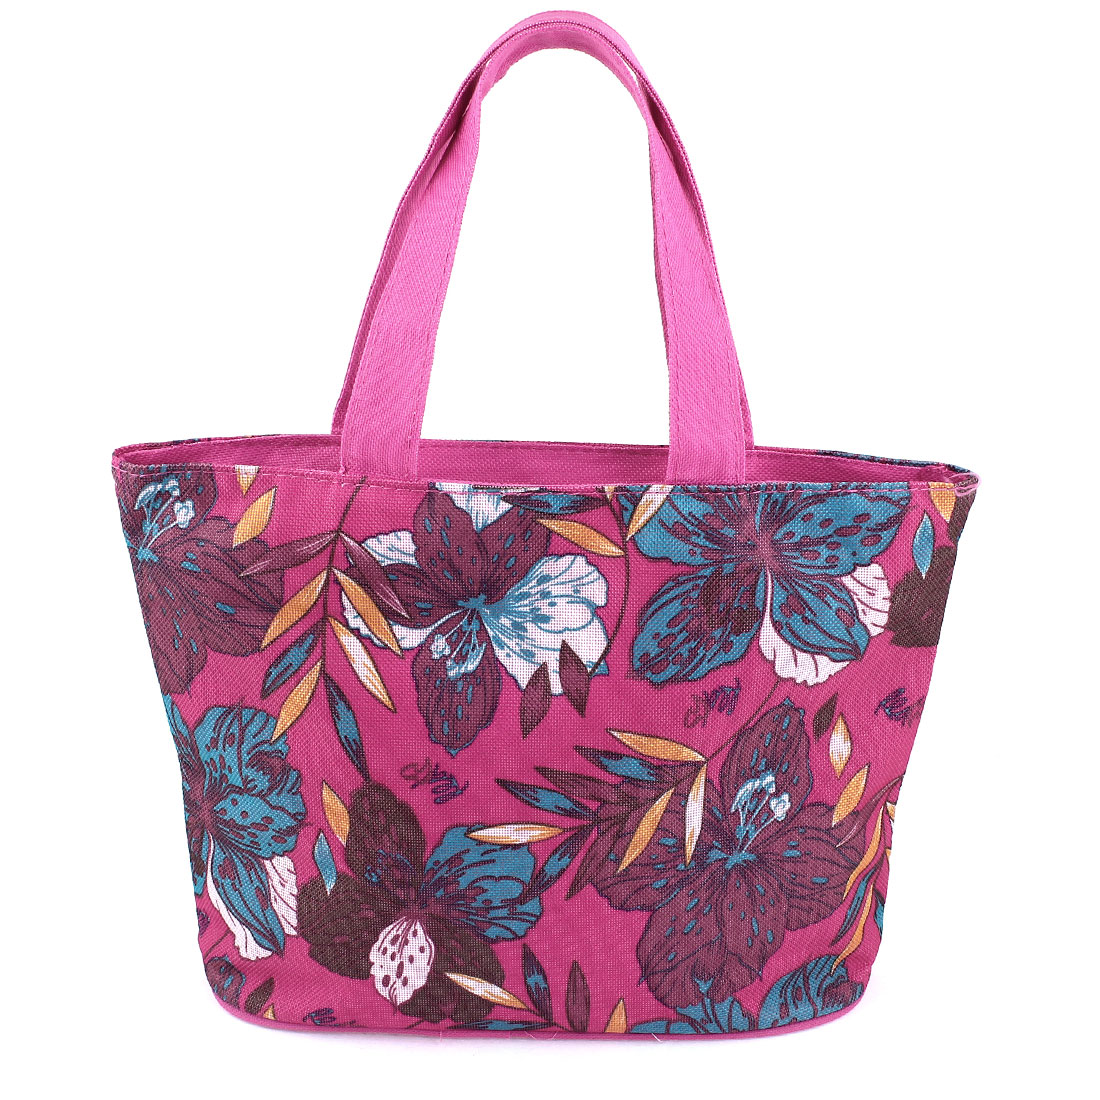 Colorful Flower Pattern Zip Up Foldable Recycle Shopping Handbag Tote Fuchsia